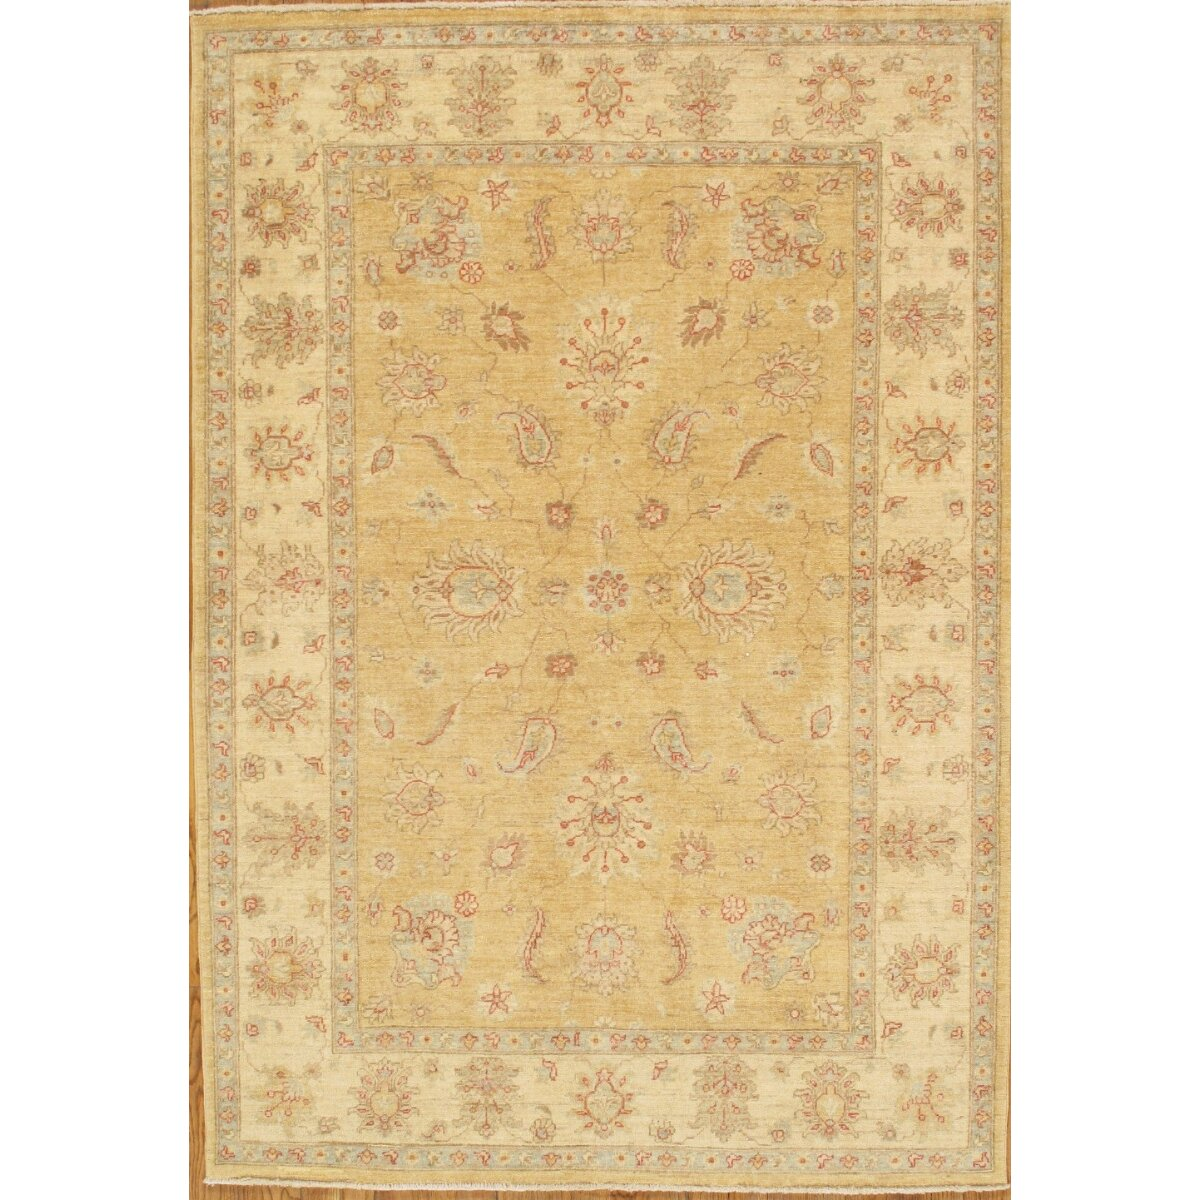 Hand Knotted Persian Style Wool Pile Area Rug: Pasargad Sultanabad Tribal Persian Style Hand-Knotted Wool